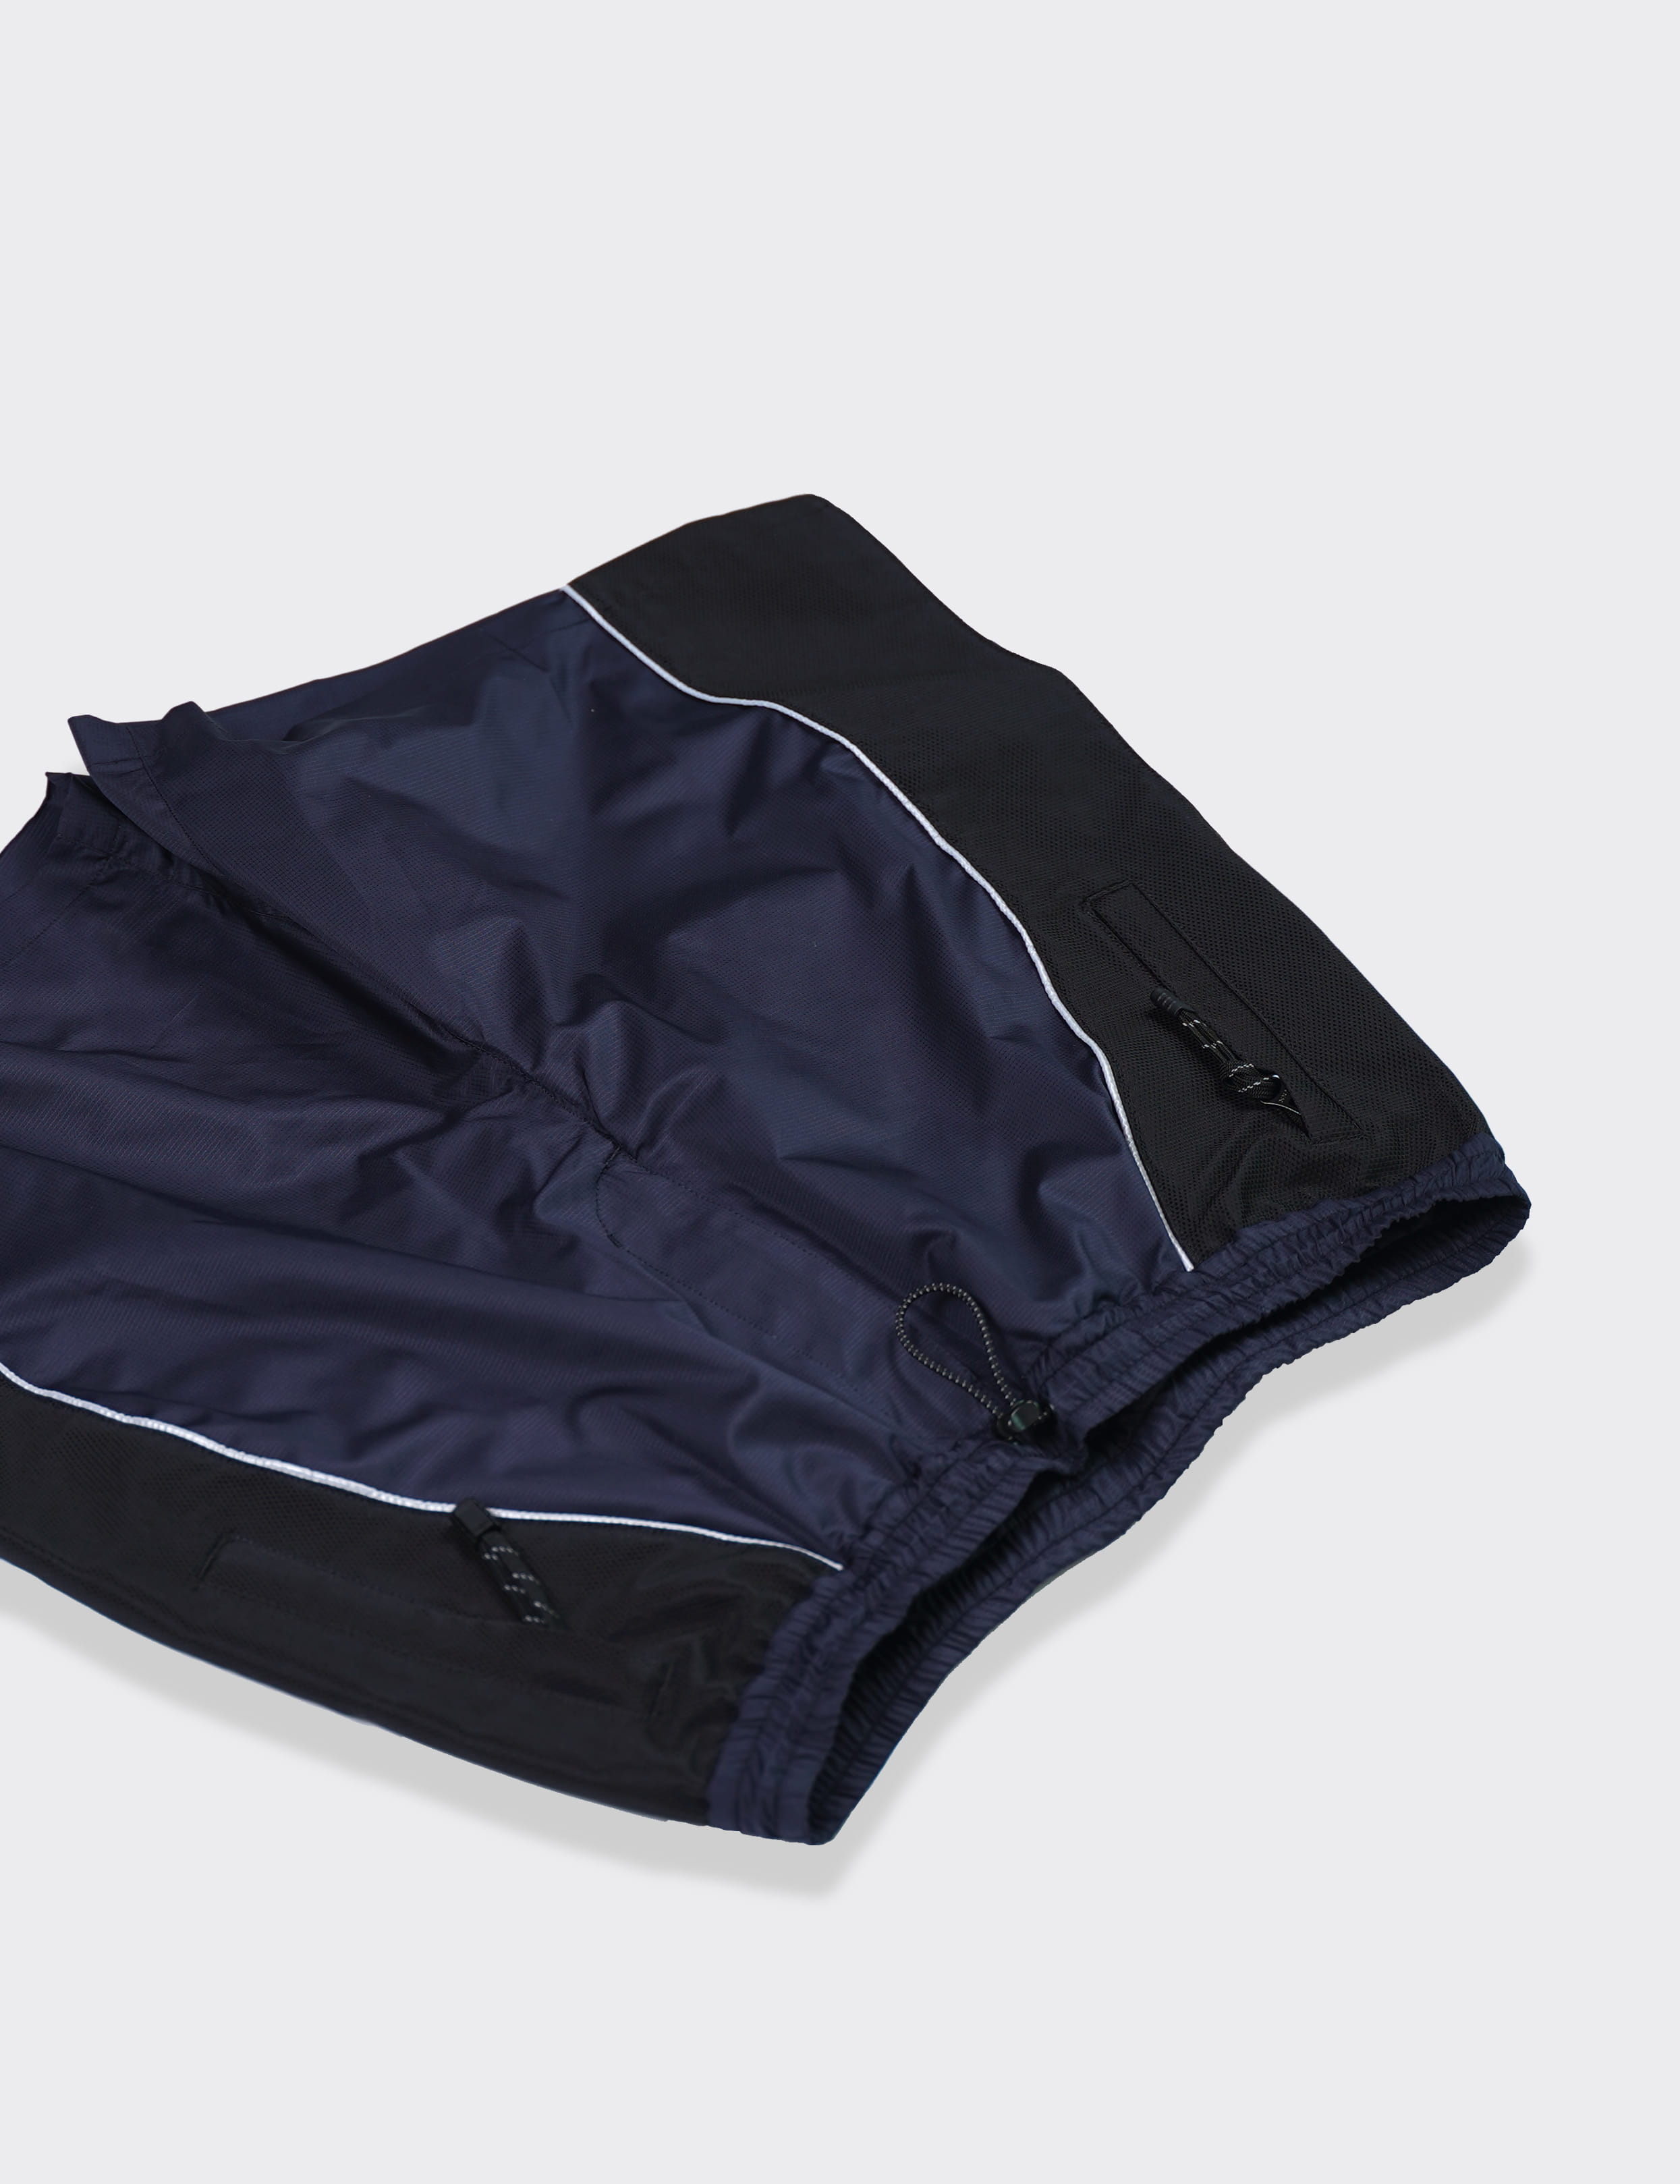 Name. : NYLON MOUNTAIN SHORTS (NAVY)